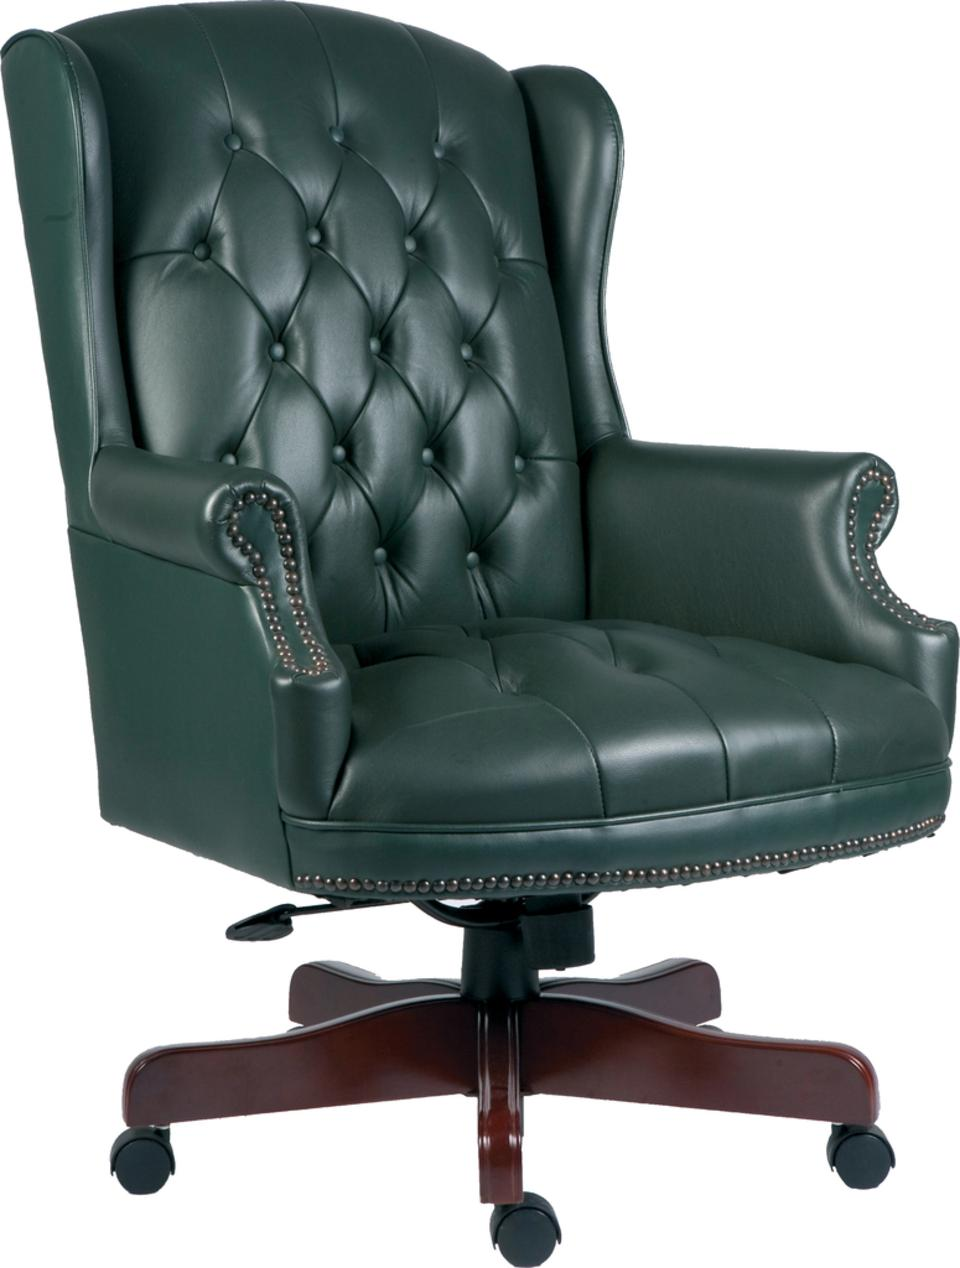 Chairman Executive Chair